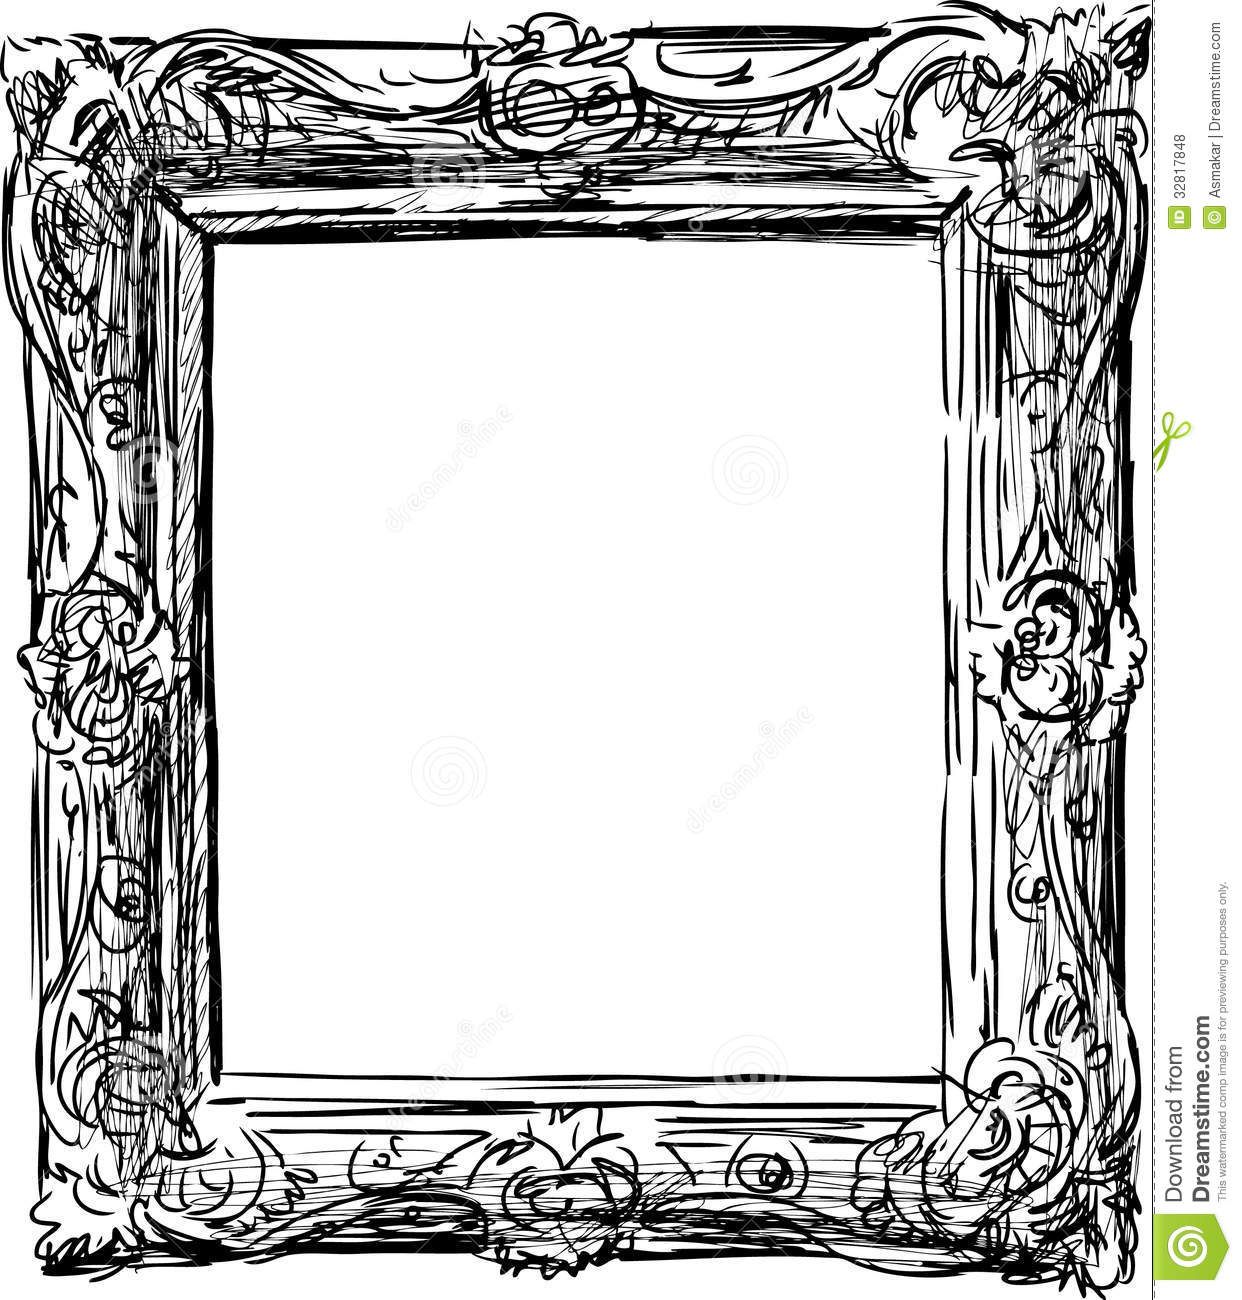 Antique frame stock photo. Image of framework, sketch ...